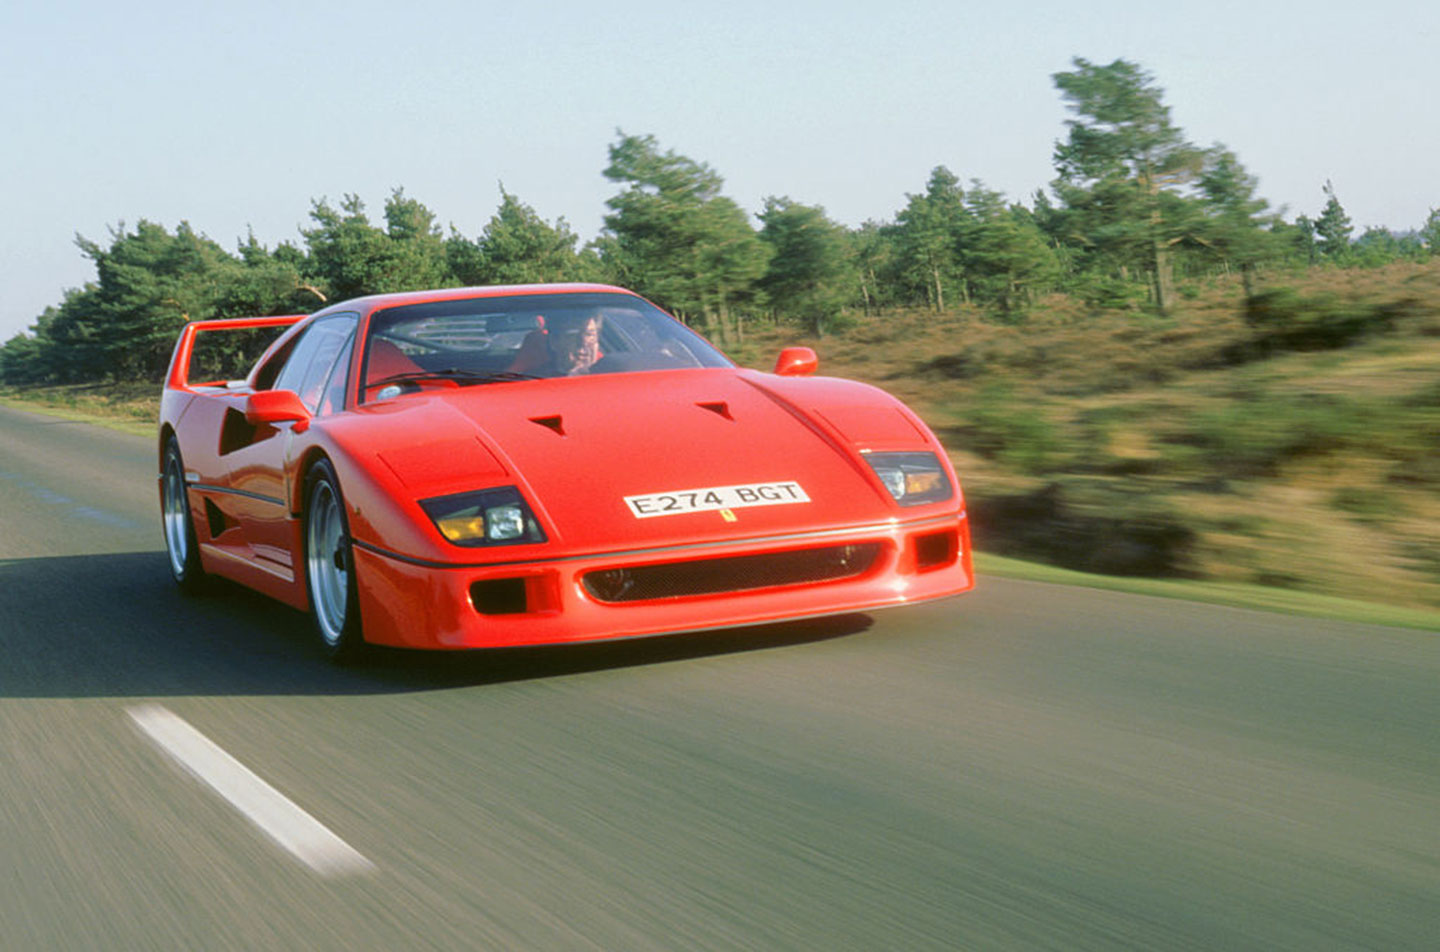 The 10 Best Cars of the 1980s - InsideHook